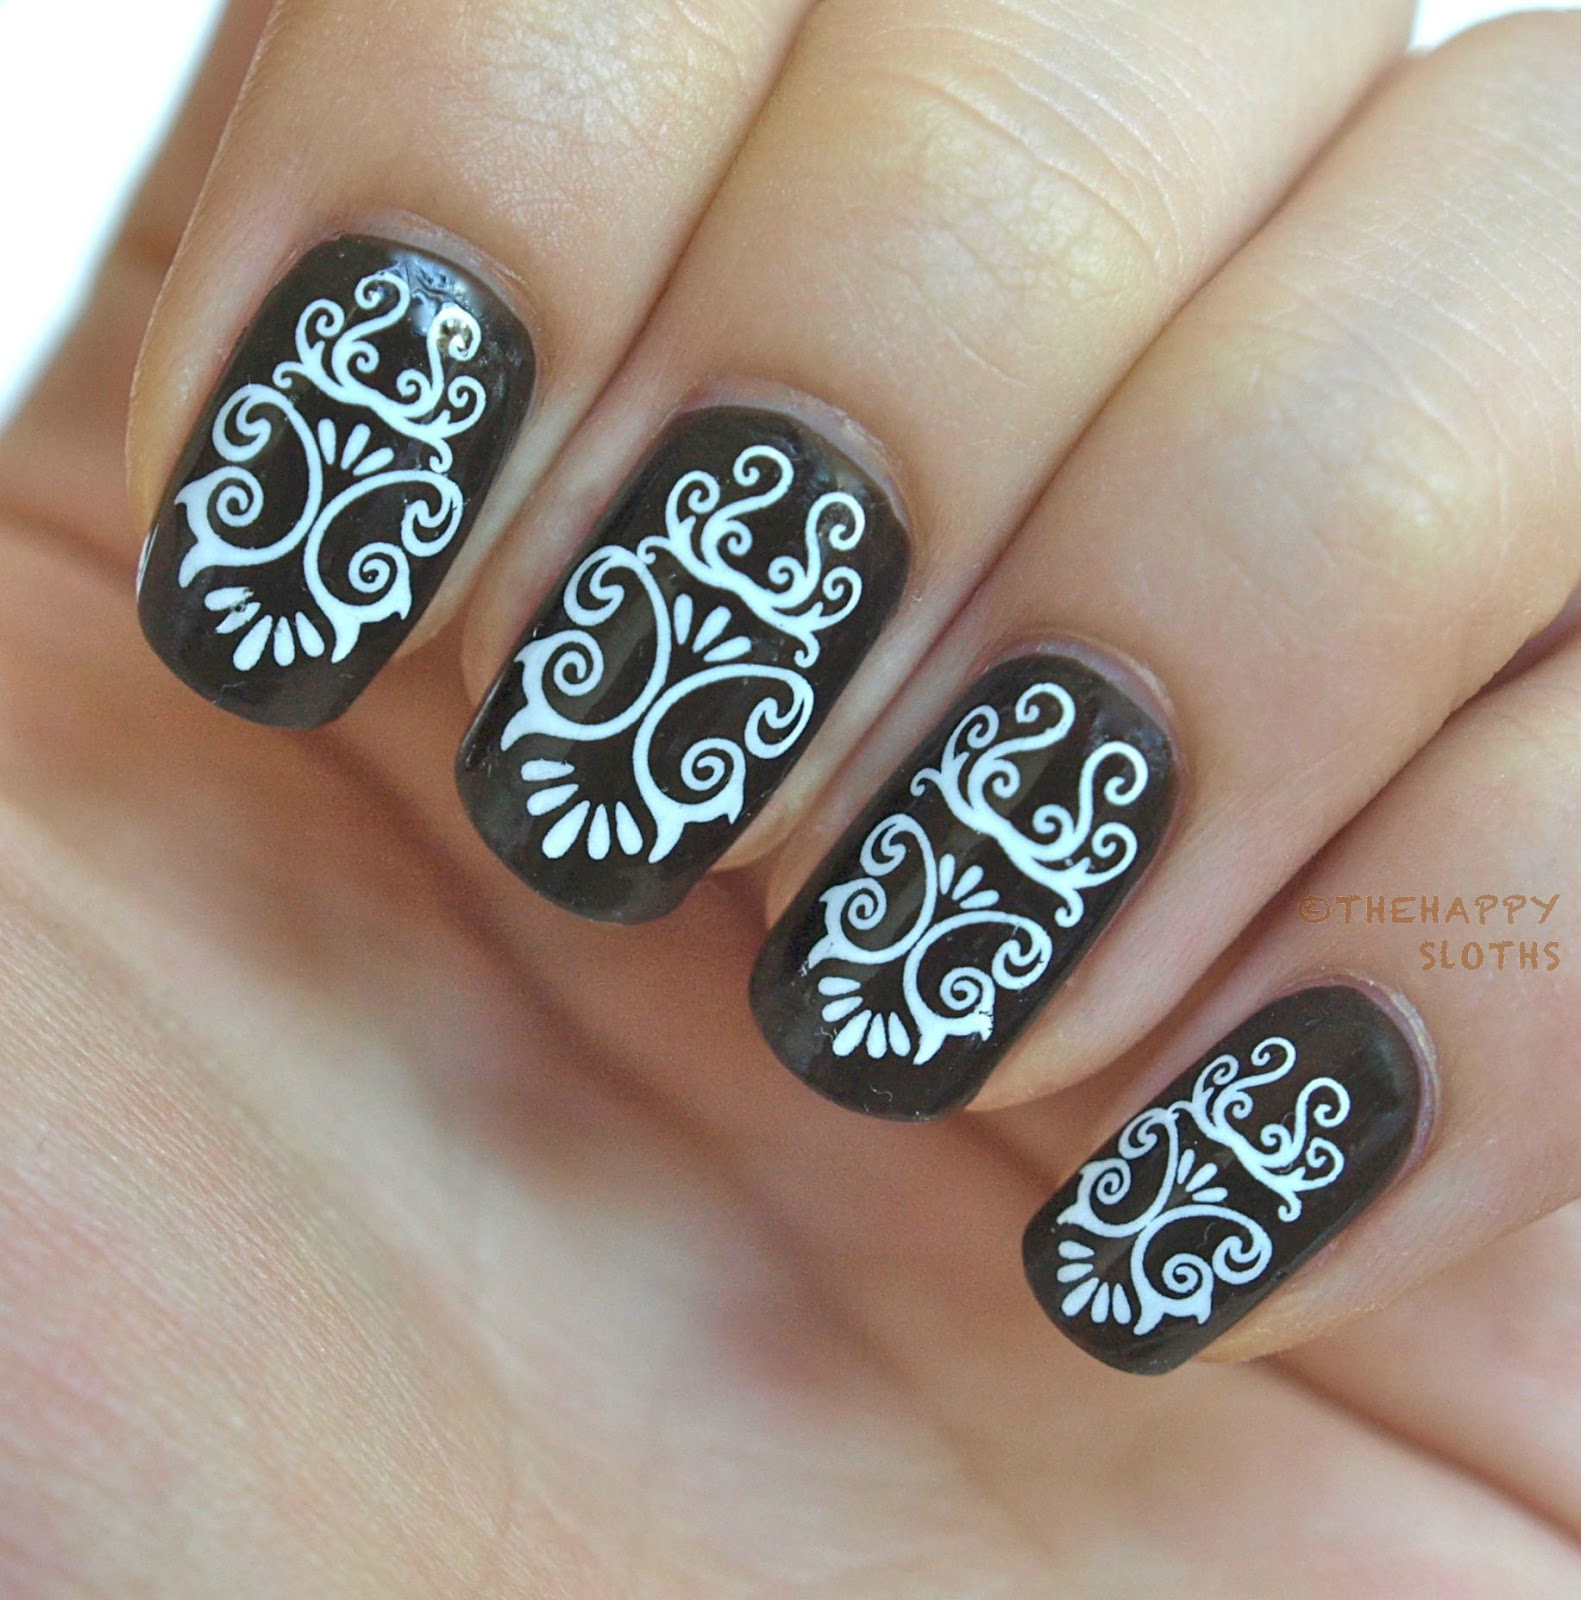 Peter Pan Nails: Swirly Lines: Manicure Featuring Water Decal Nail Stickers